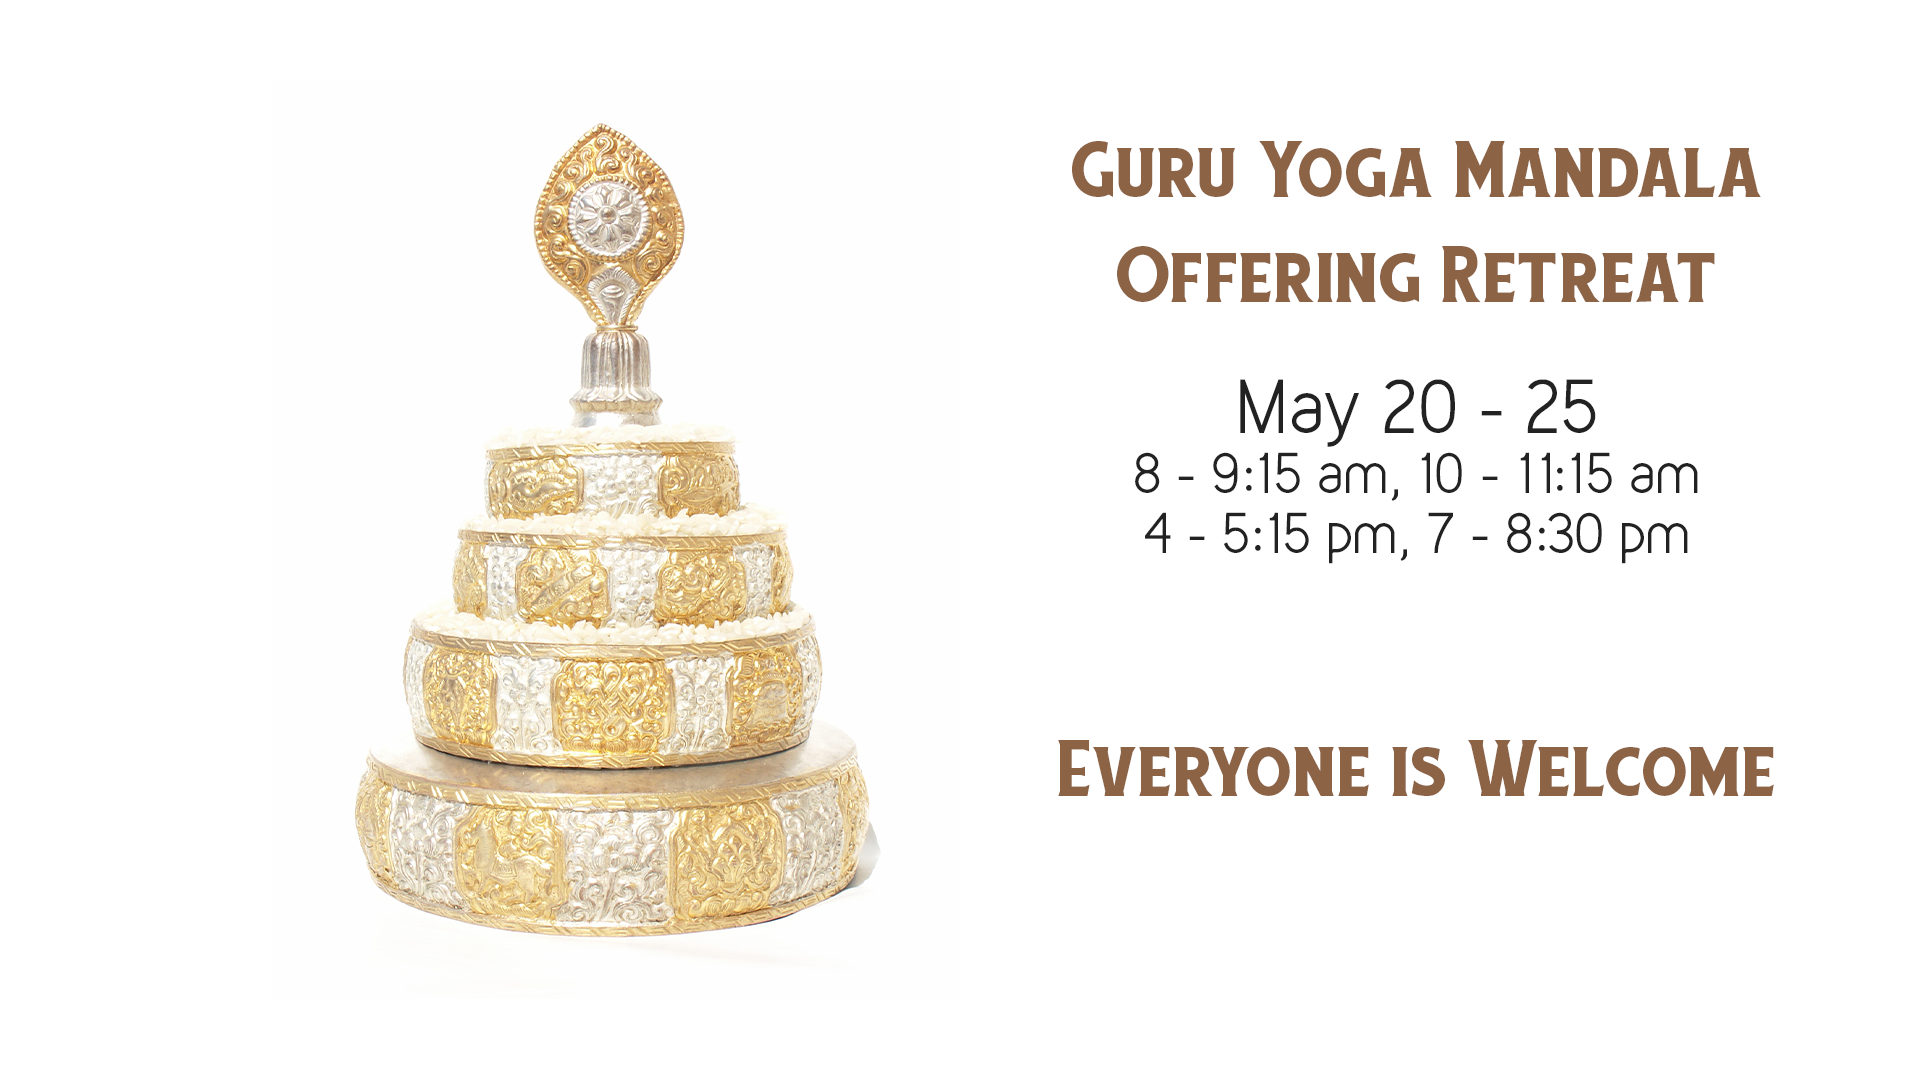 Guru Yoga Mandala Offering Retreat